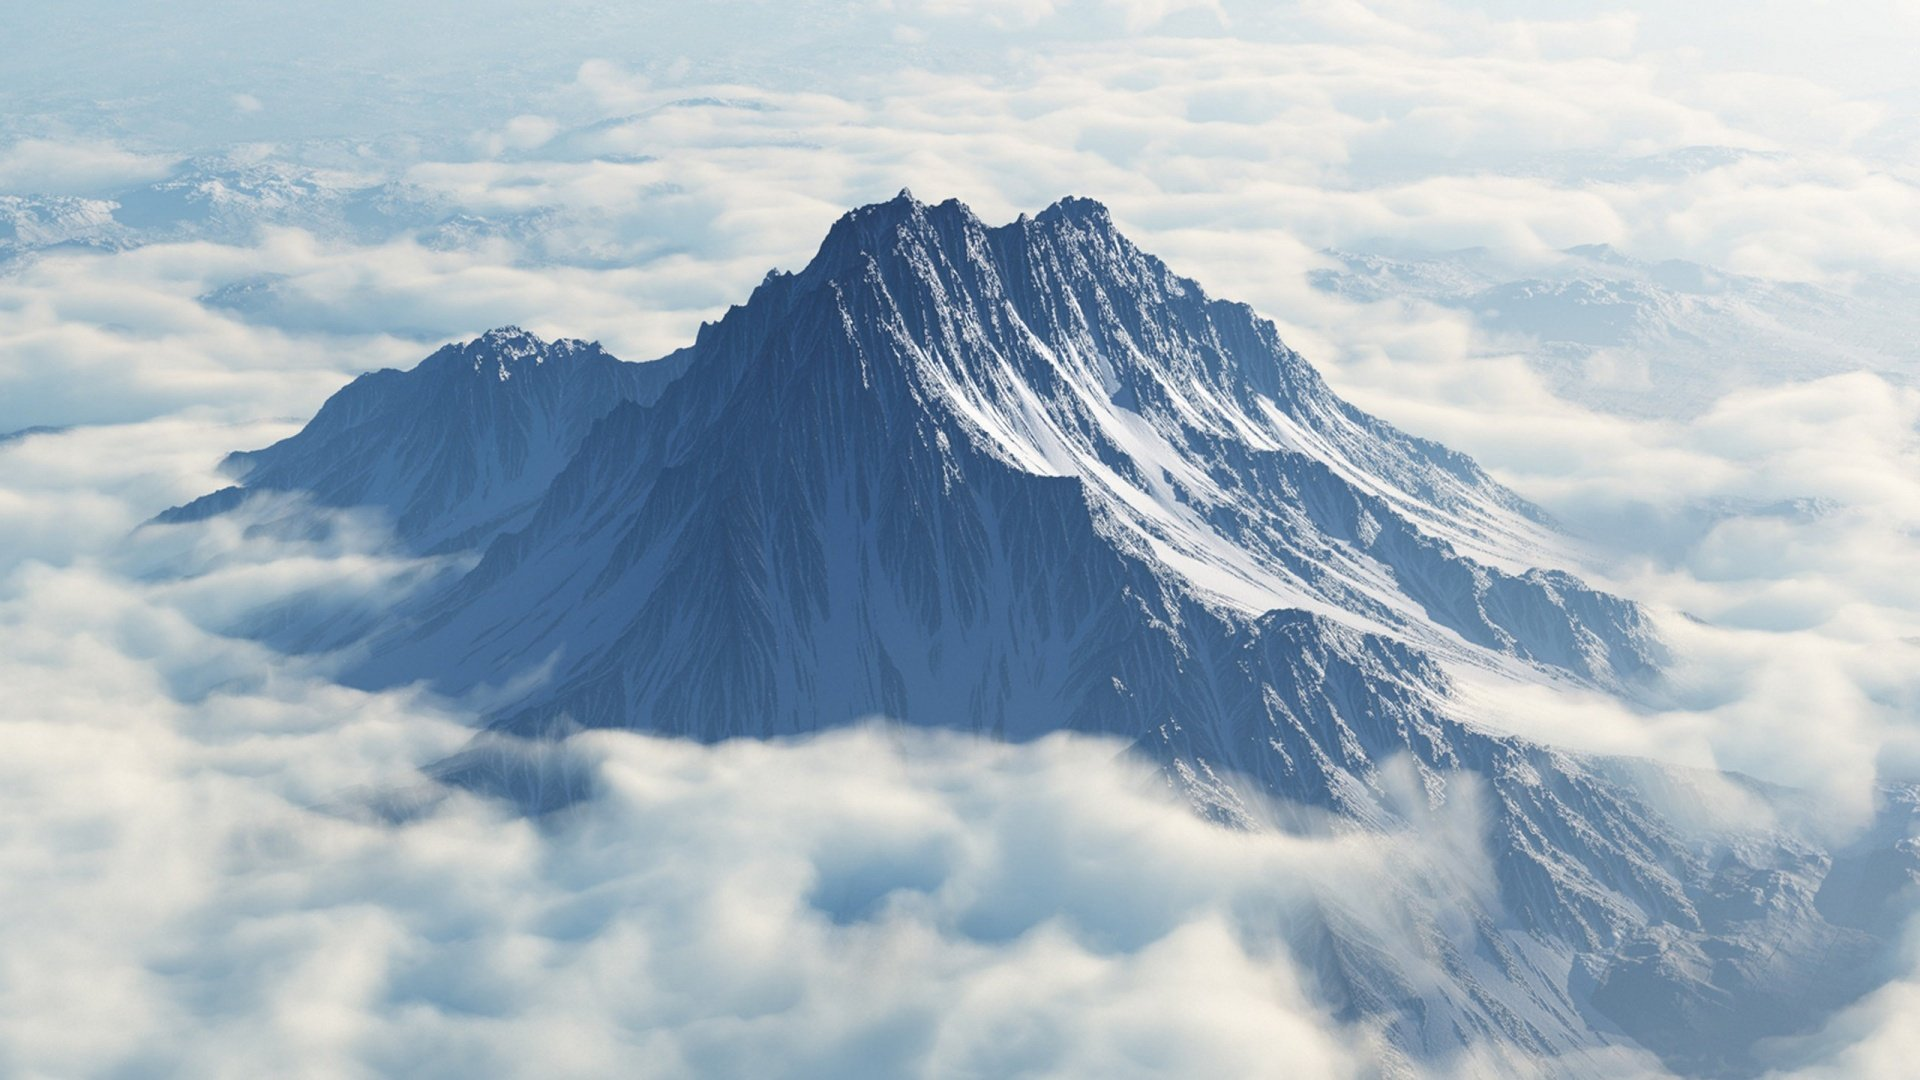 1920x1080 Mount Olympus Aerial View desktop PC and Mac wallpaper 1920x1080